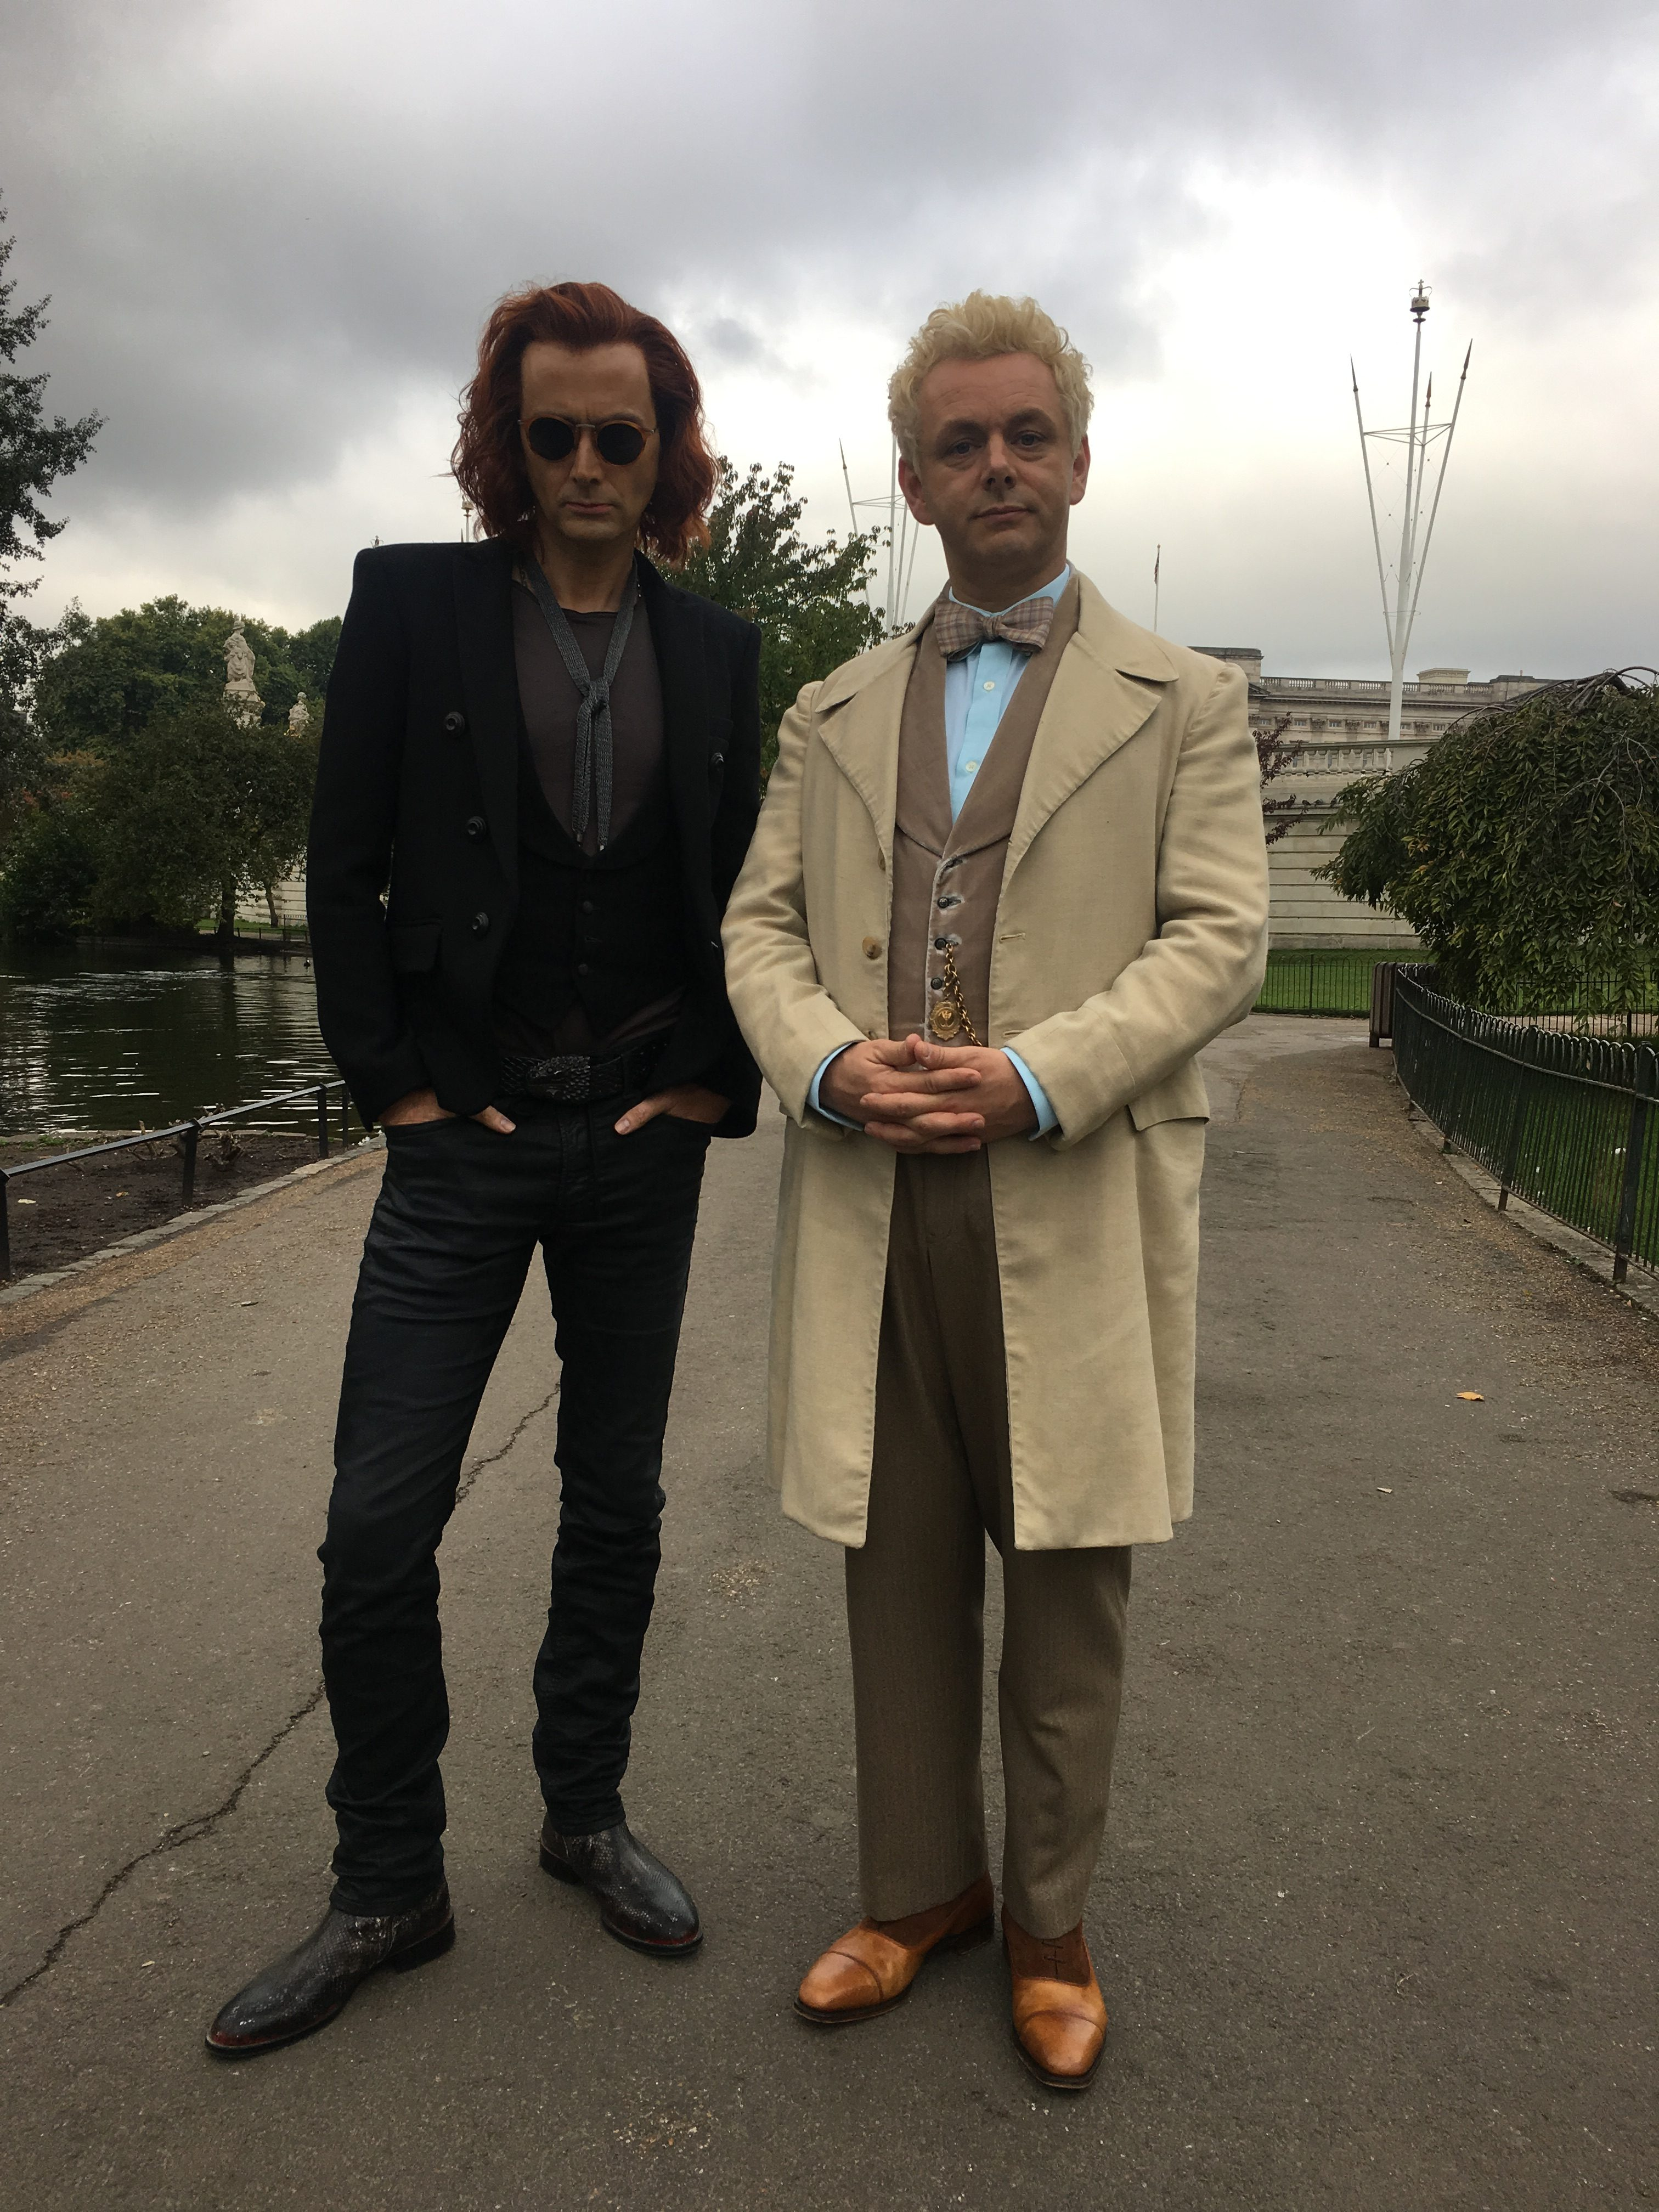 Our First Look at Michael Sheen, David Tennant in 'Good Omens'